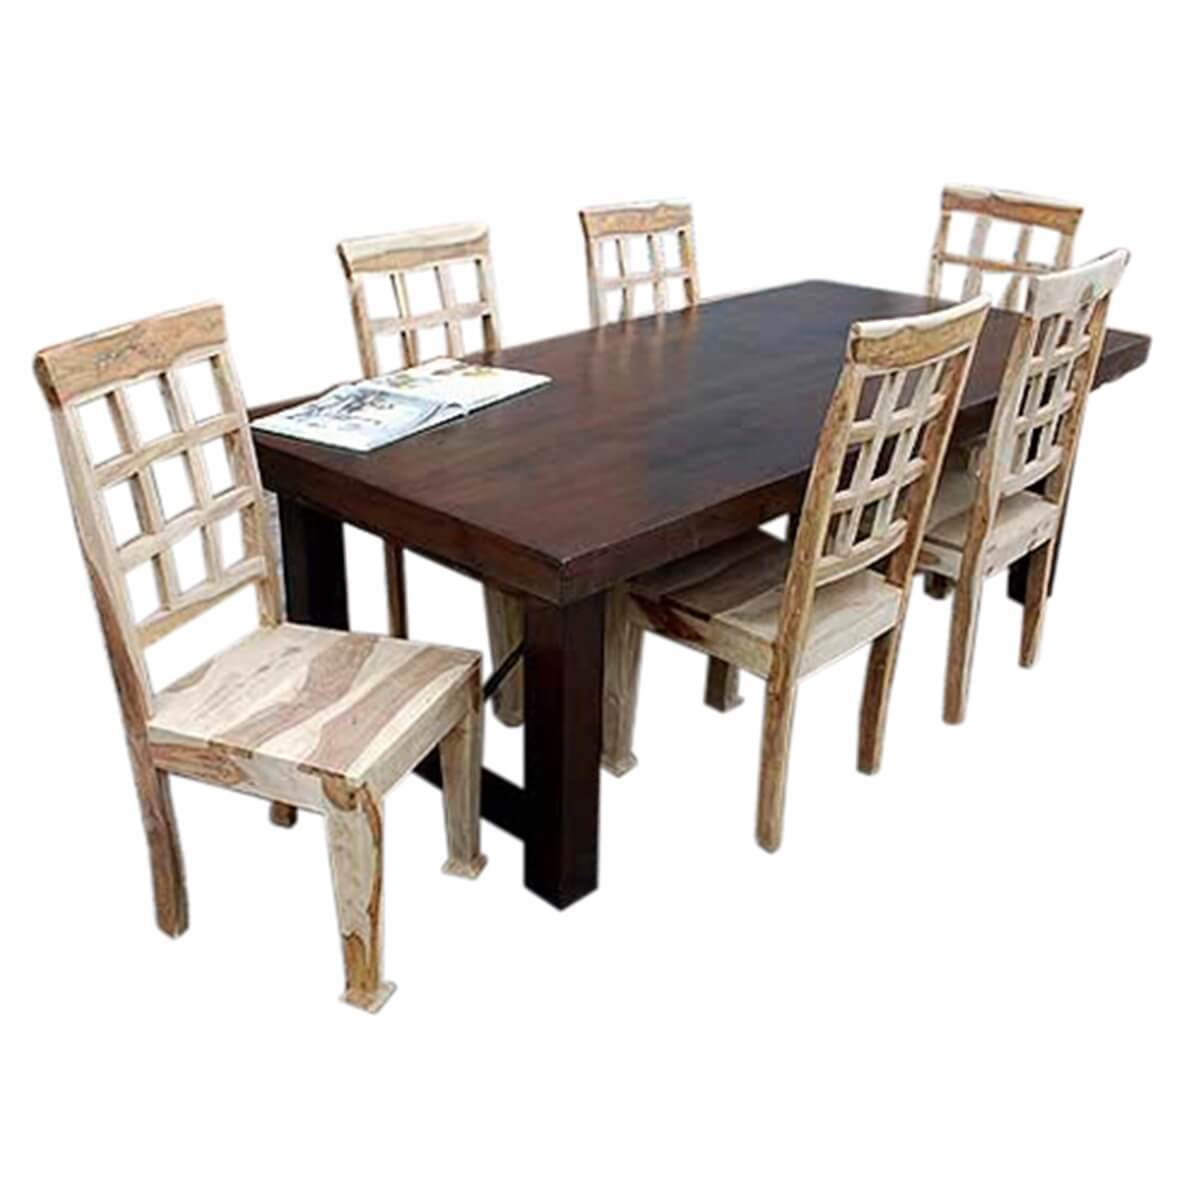 Santa fe solid wood rustic dining table and chair set for for Rustic dining table and chairs